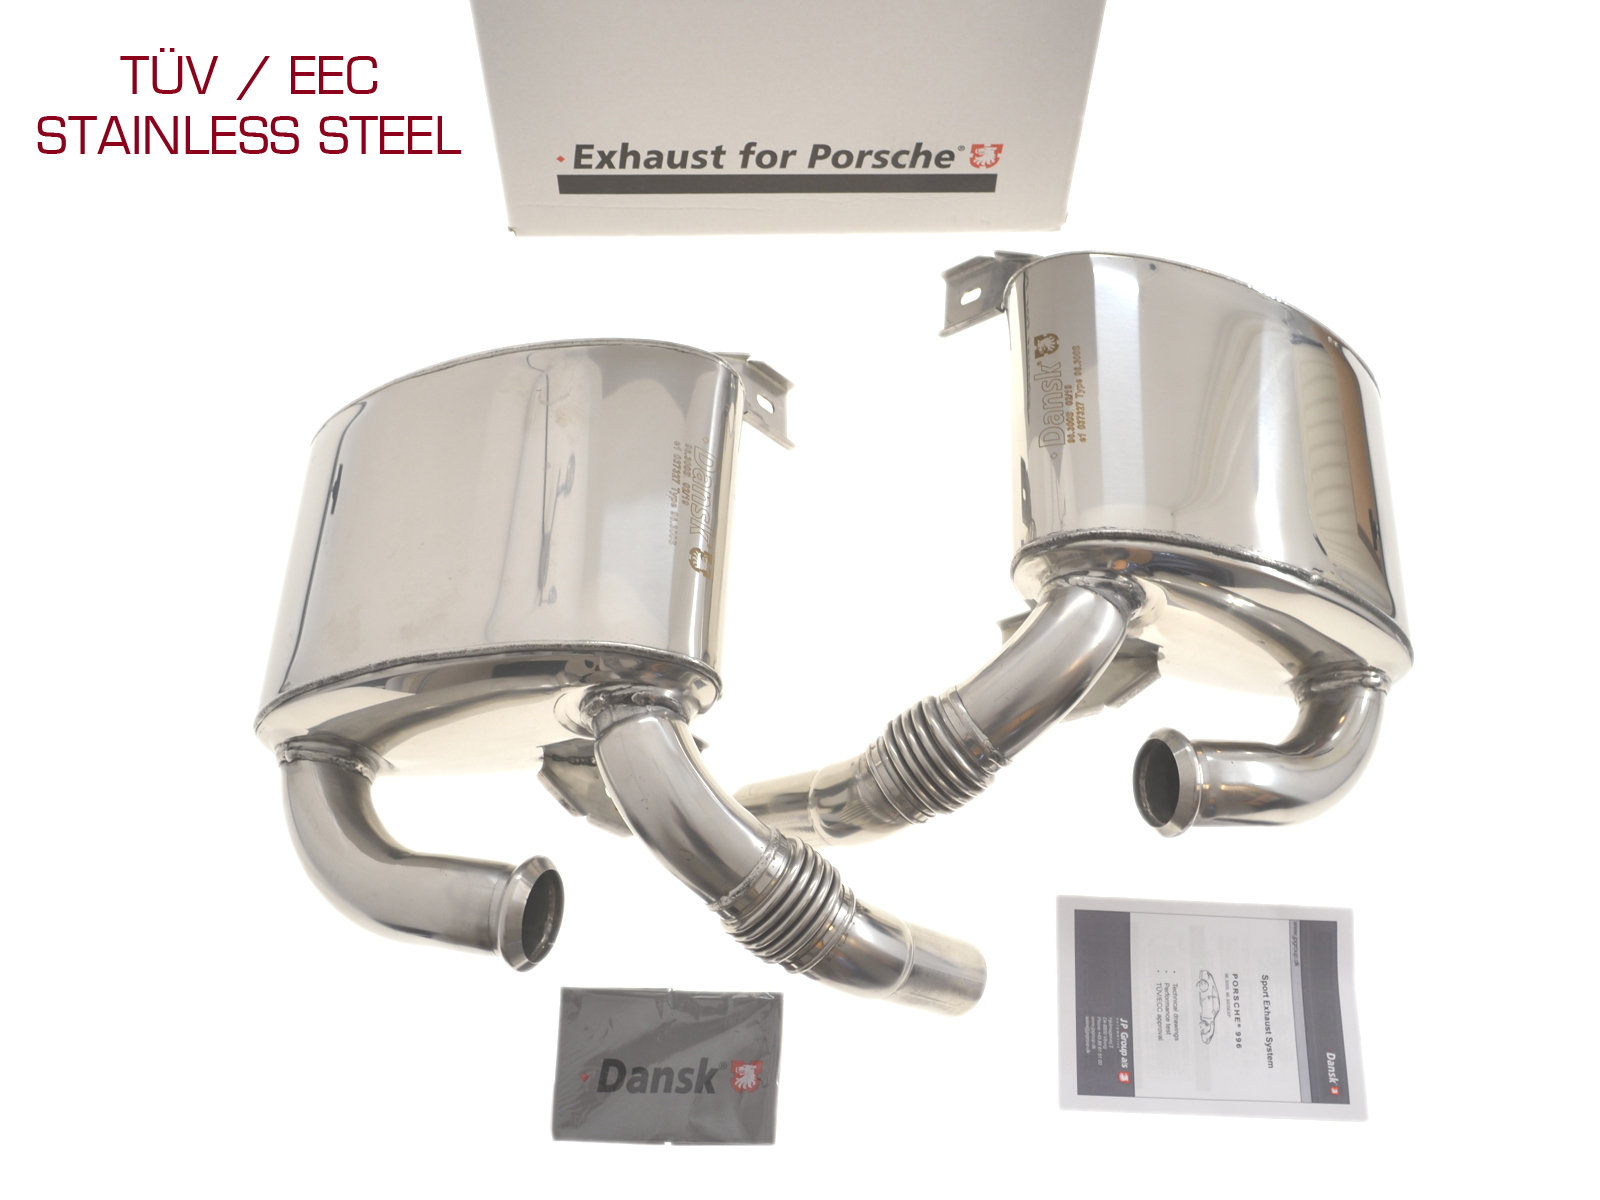 JP rear silencer for Porsche 996 sport exhaust STAINLESS STEEL with TÜV